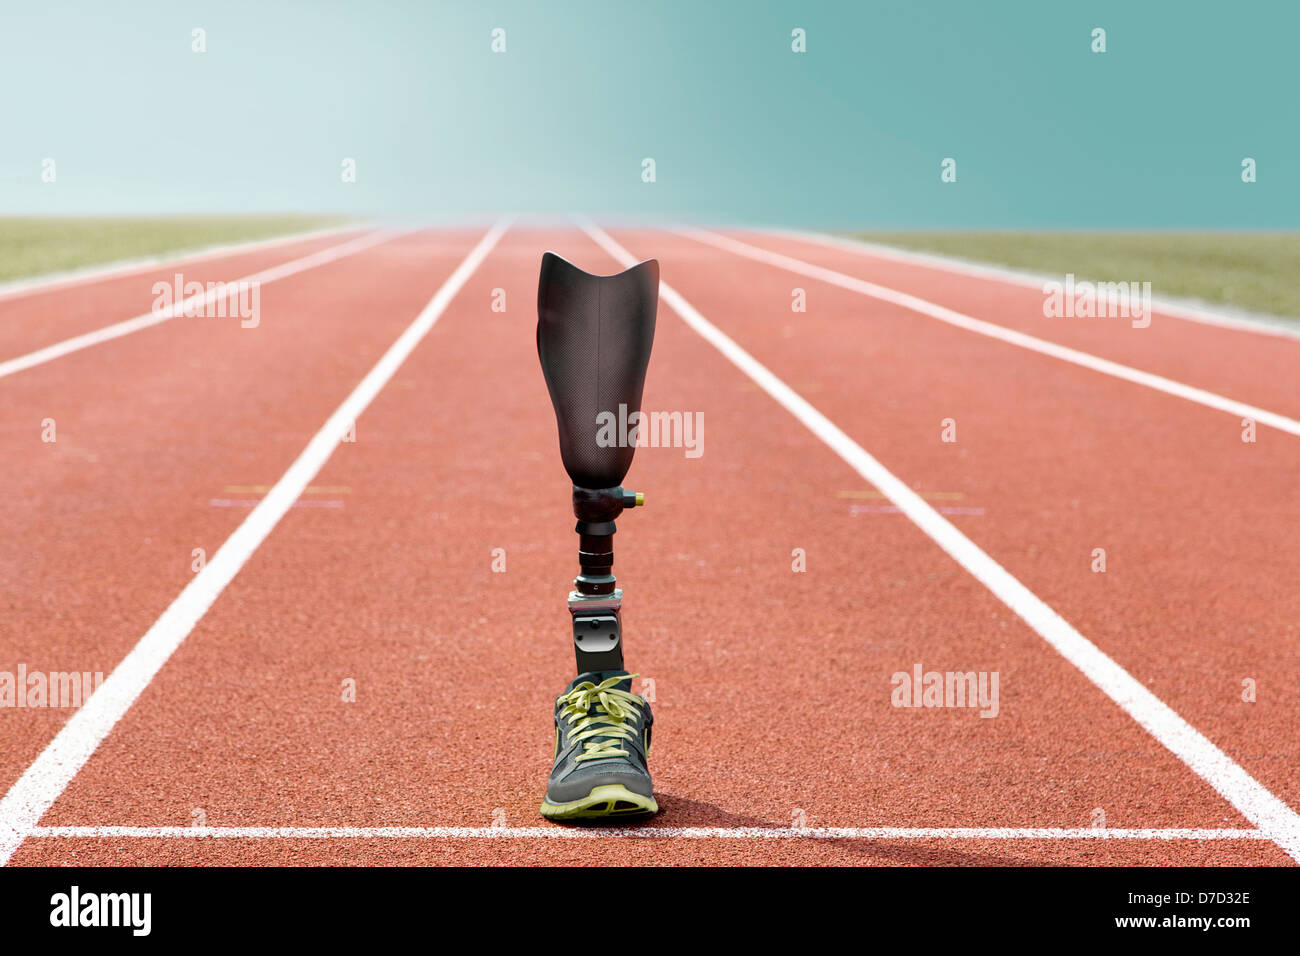 Athletic sports prosthesis of a disabled athlete stands on a tartan track - Stock Image